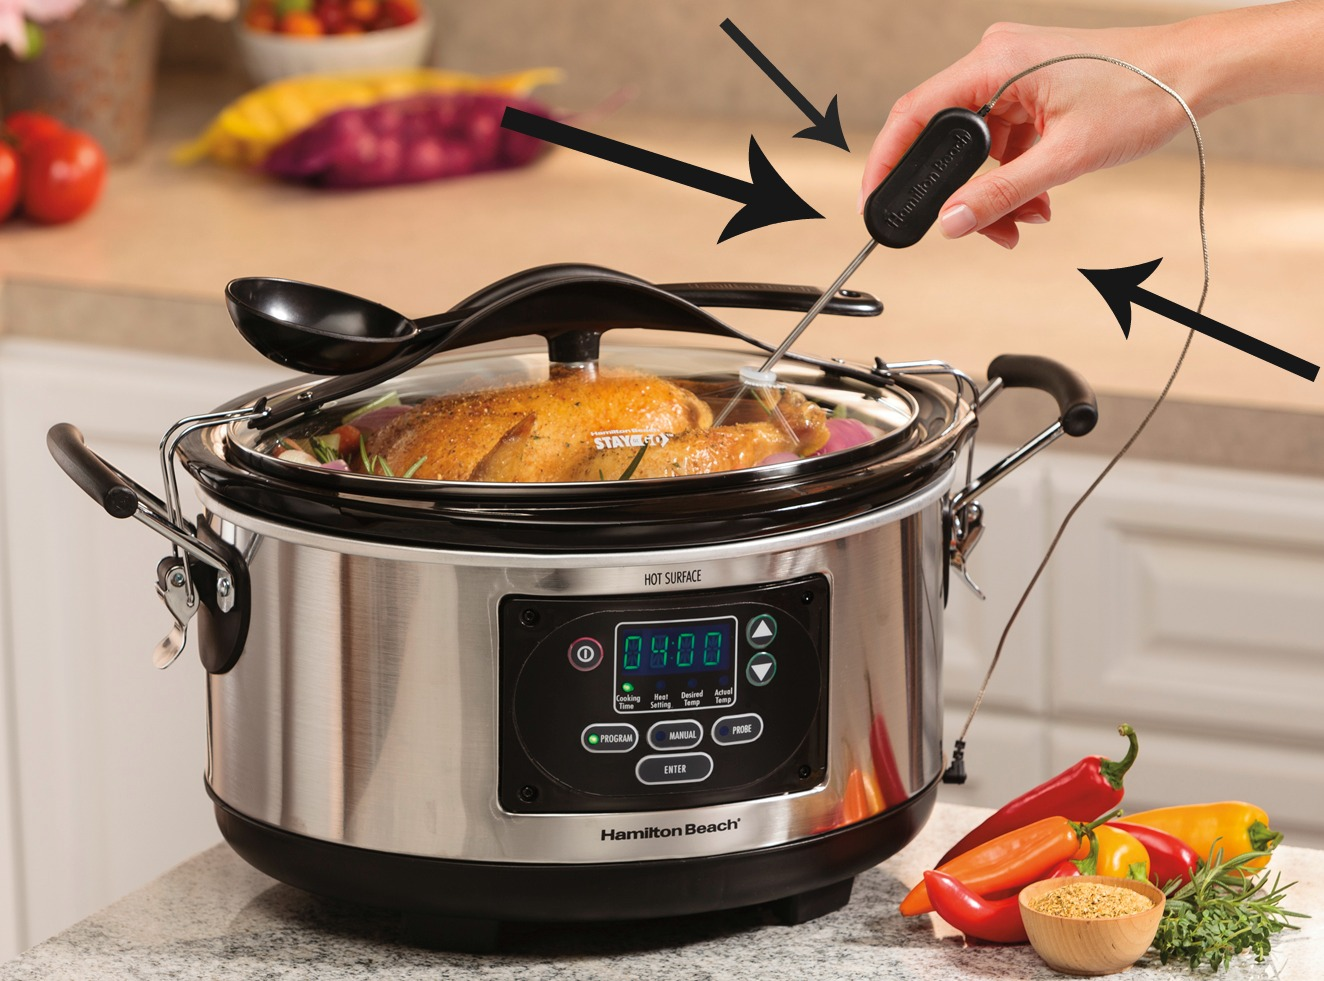 Hamilton Beach Set & Forget 6-quart Programmable Slow Cooker with Spoon and Lid